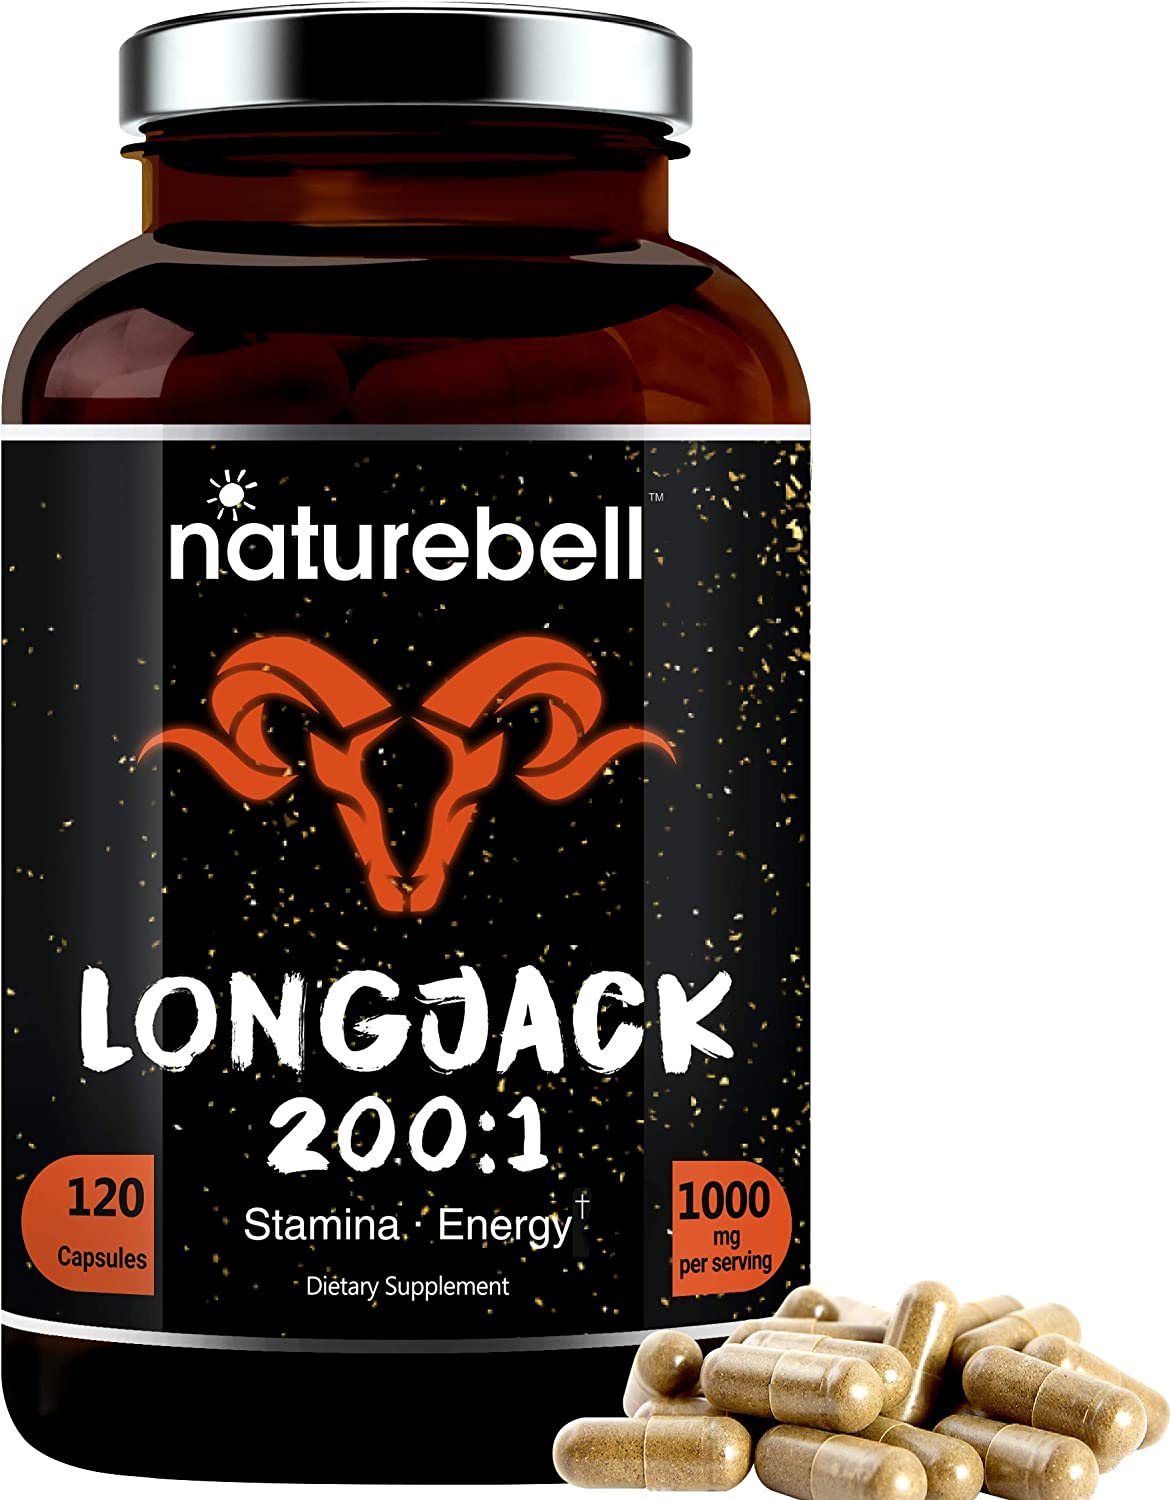 Long Jack Extract as Tongkat Ali 200:1, 1000mg Per Serving, 120 Capsules, Supports Energy, Stamina and Immune System for Men and Women, Super LongJack Pills, Non-GMO: Health & Personal Care